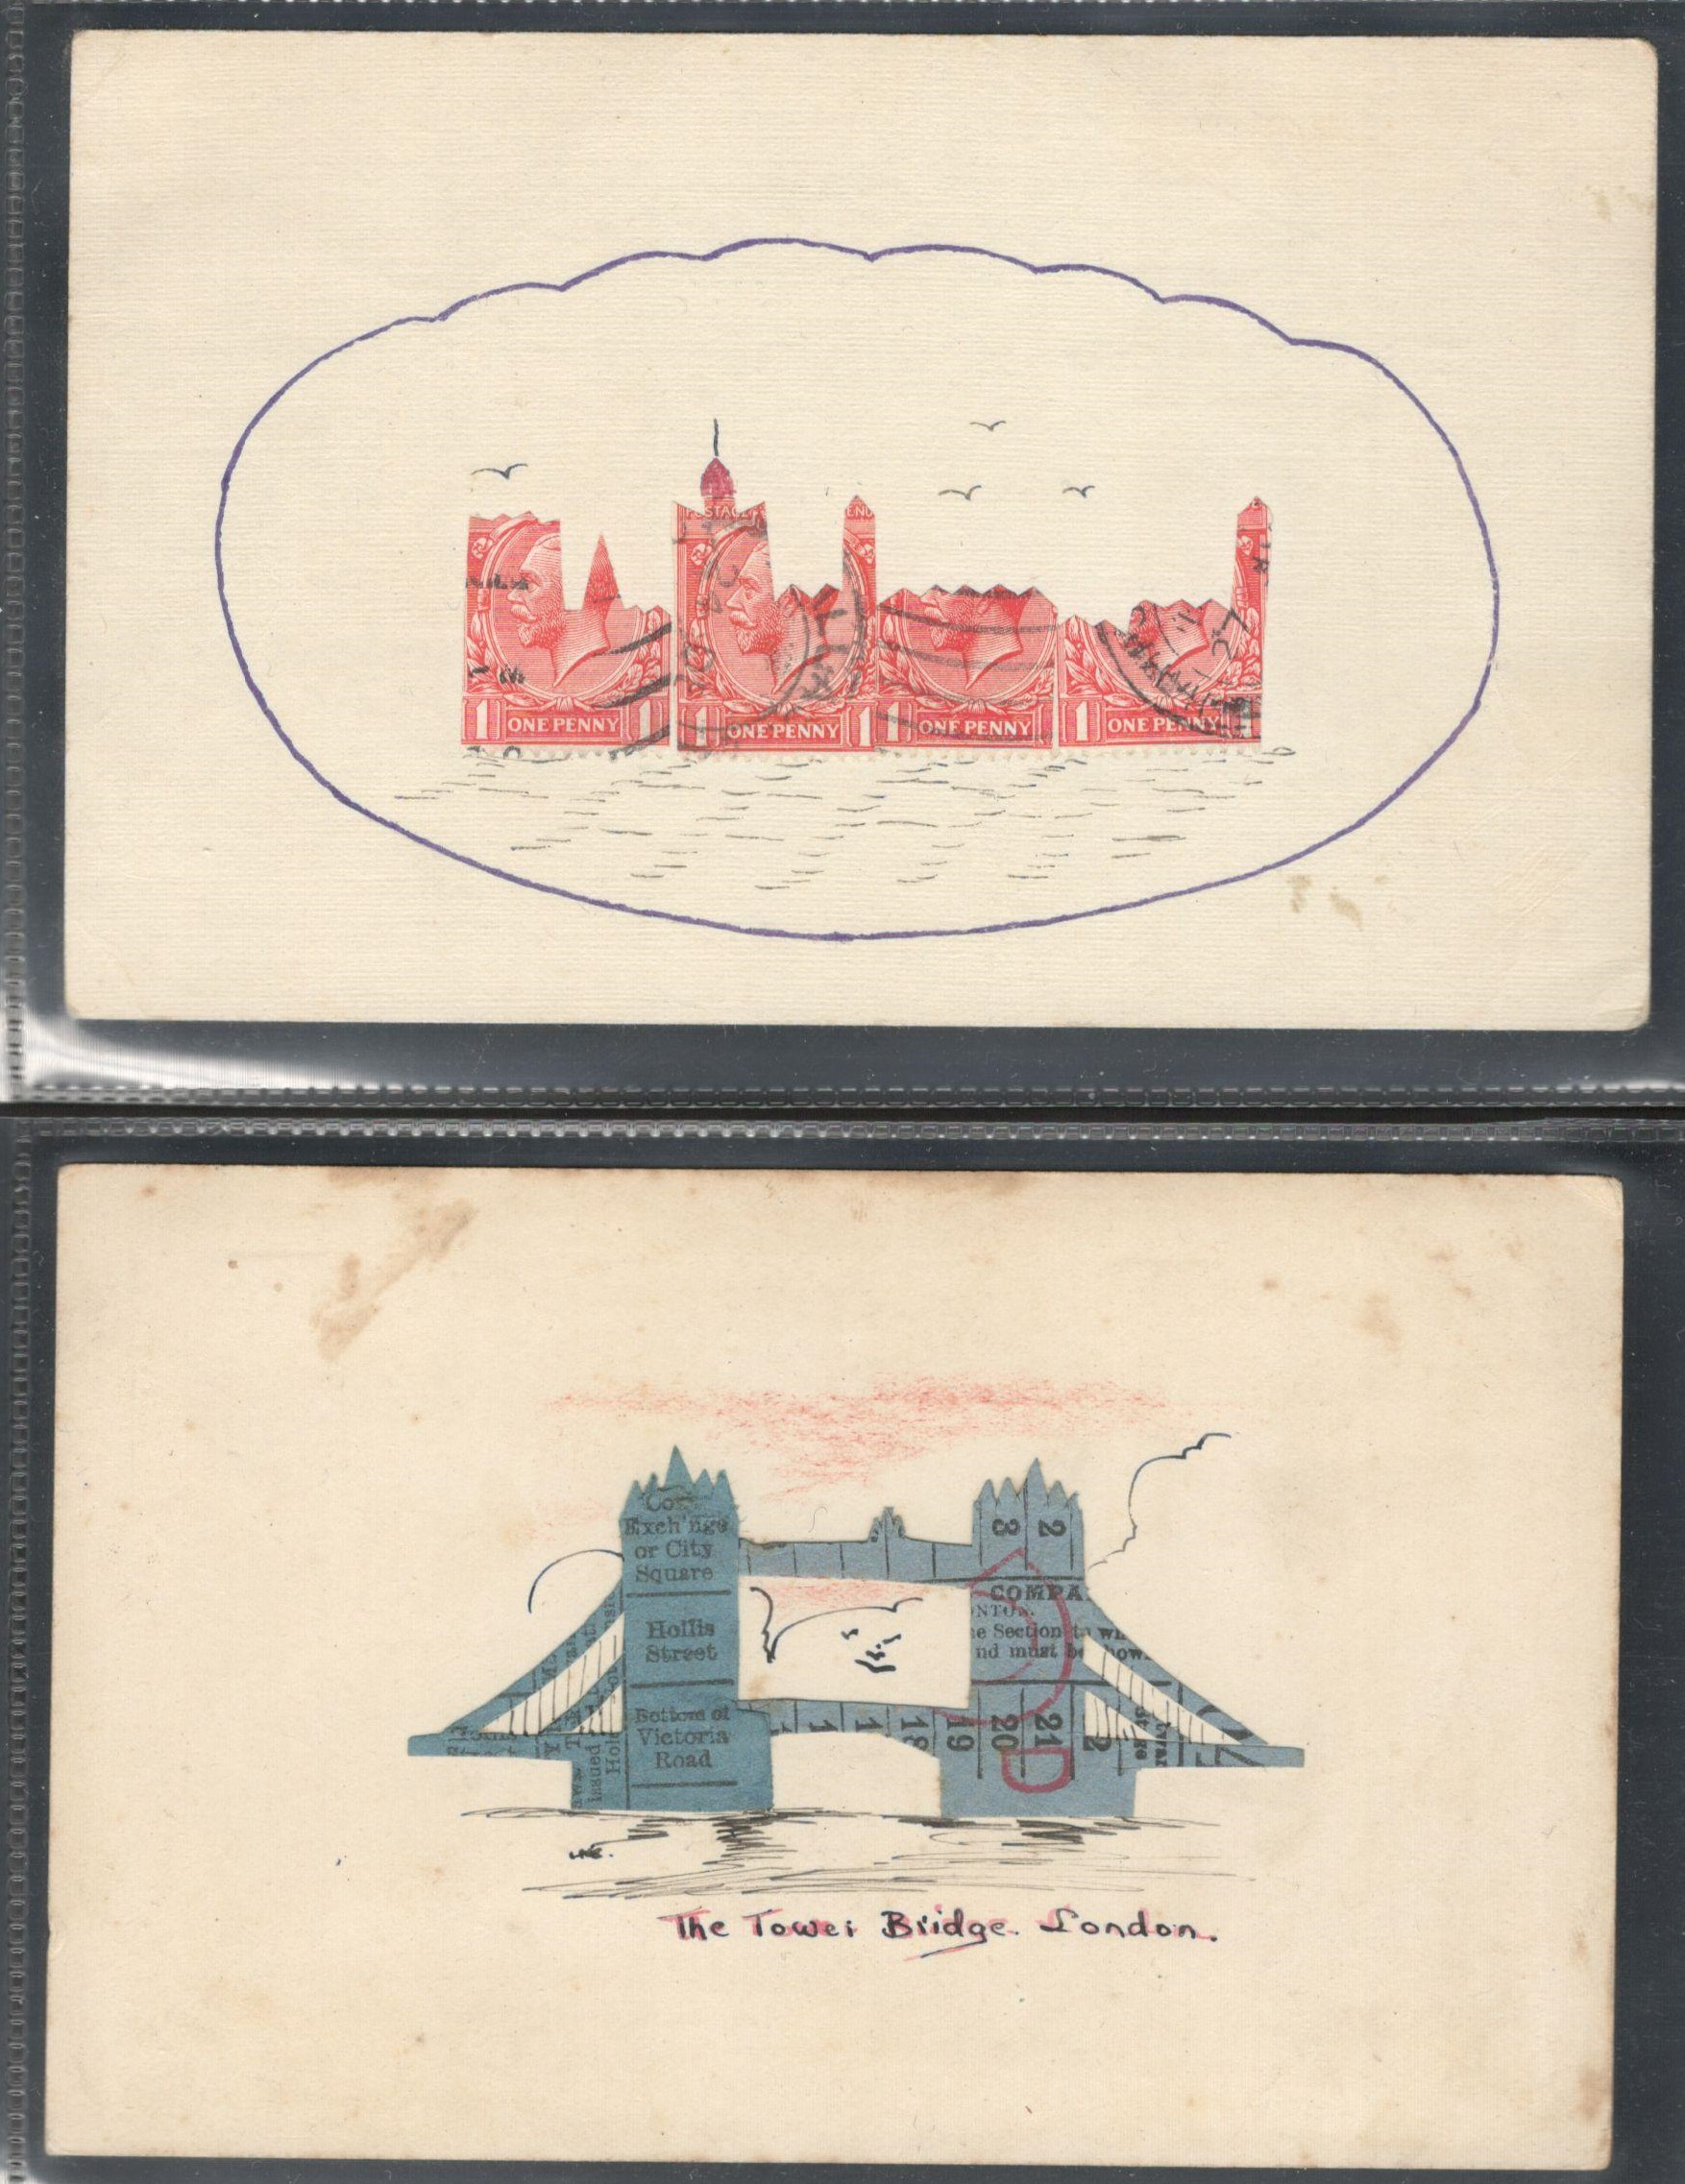 Lot 82 - TWO STAMP MONTAGE POSTCARDS IN VARIOUS CONDITION